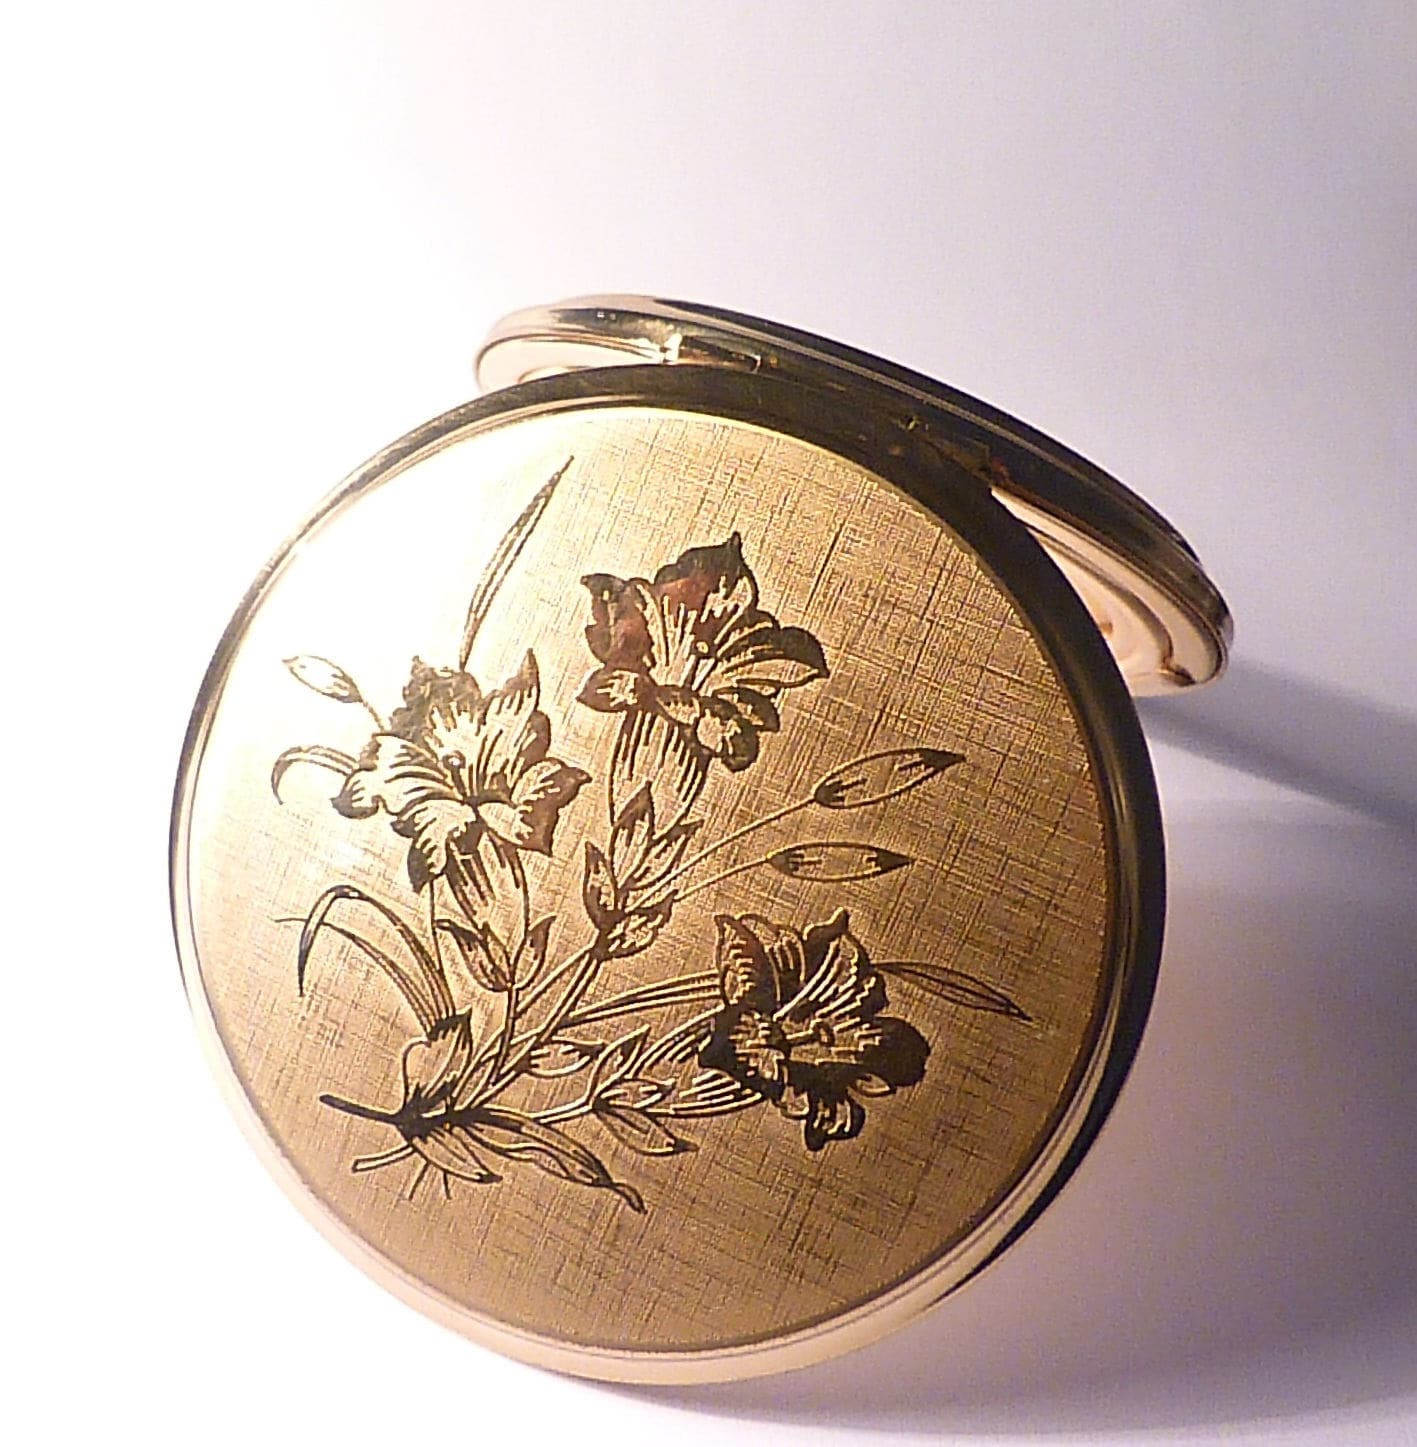 Vintage gift ideas for her vintage Stratton compact mirrors vintage bridesmaids gifts